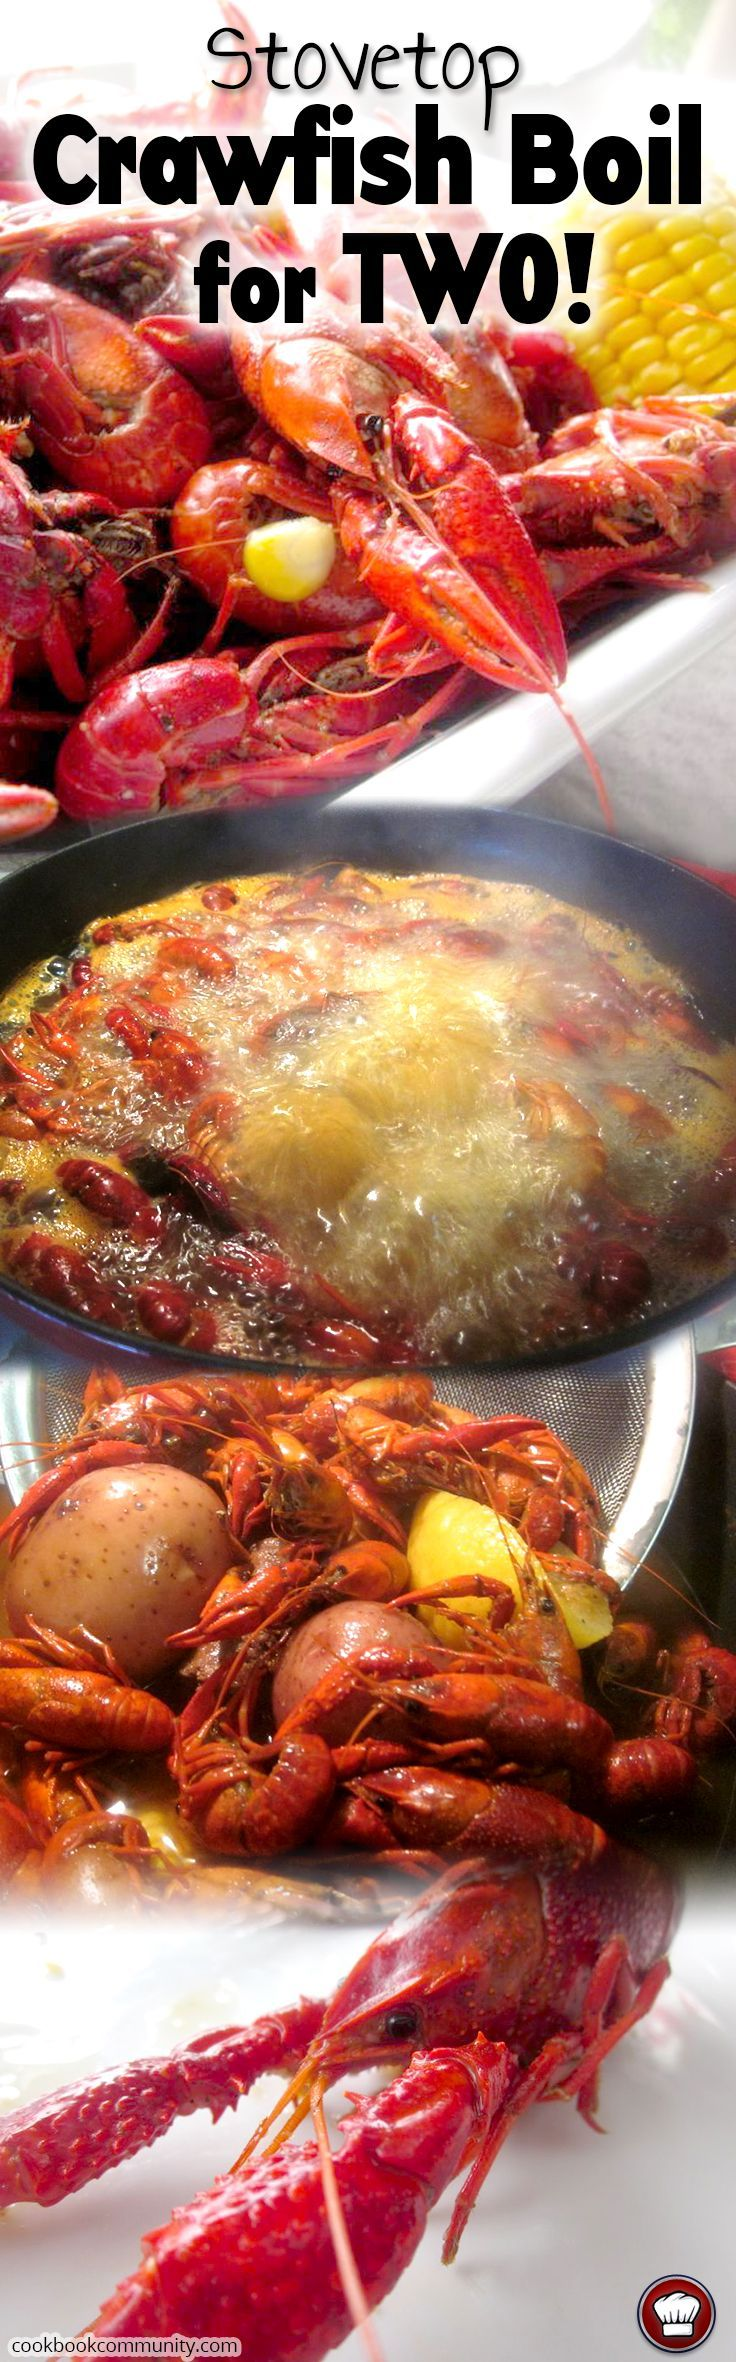 Crawfish Boil For Two People! While Most Crawfish Boil Recipes Call For 35  Pounds Or